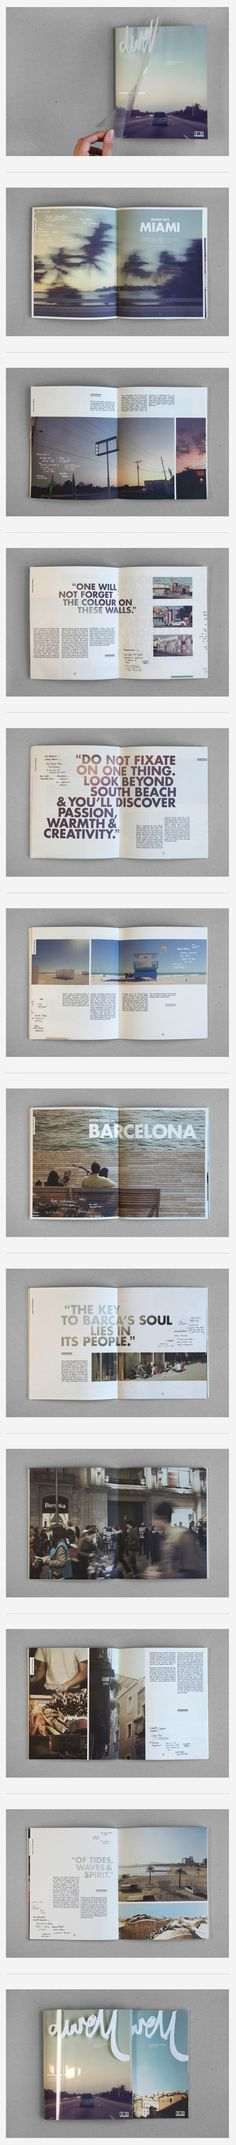 110 best Memorable magazines images on Pinterest Editorial - newsletter templates in word